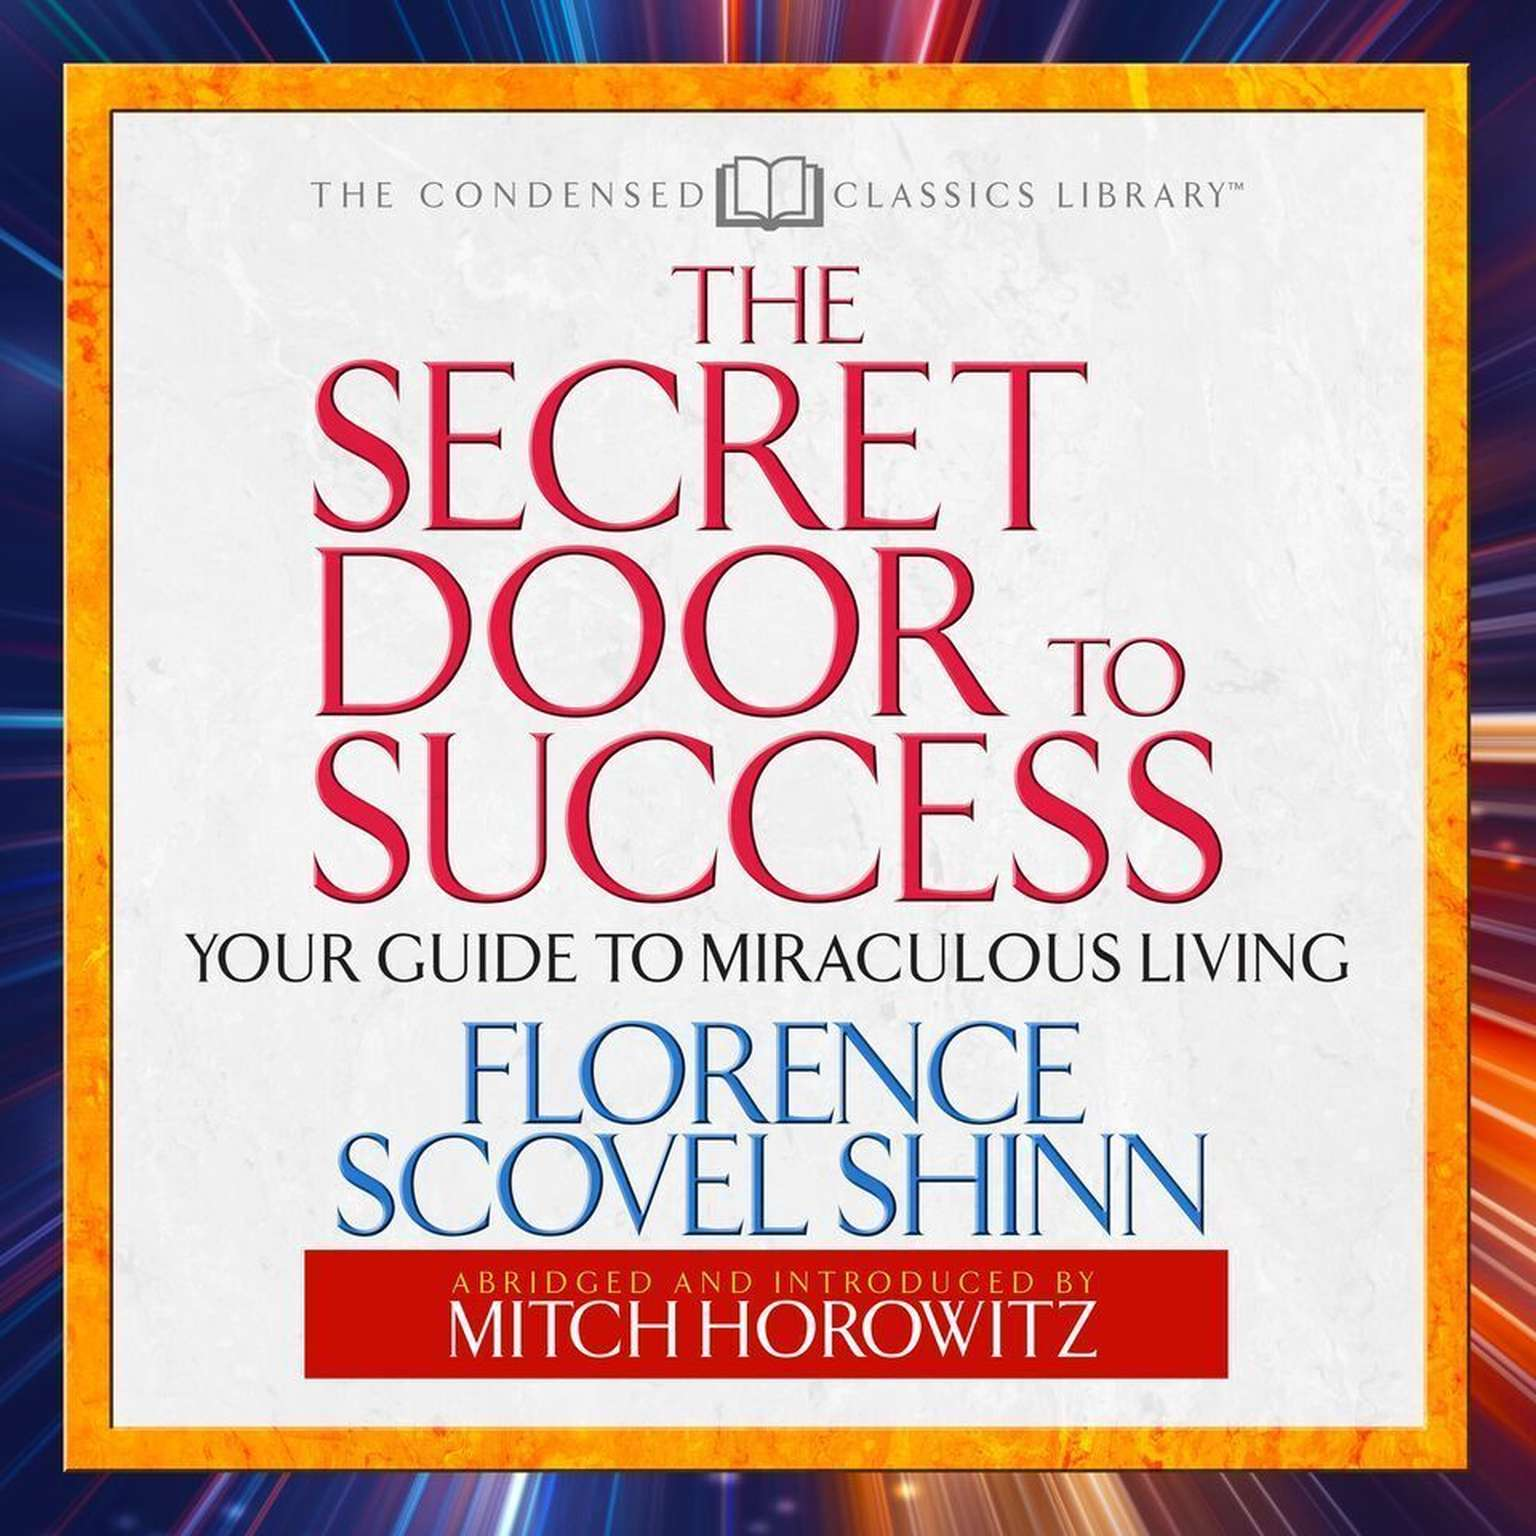 Printable The Secret Door to Success (Abridged): Your Guide to Miraculous Living Audiobook Cover Art